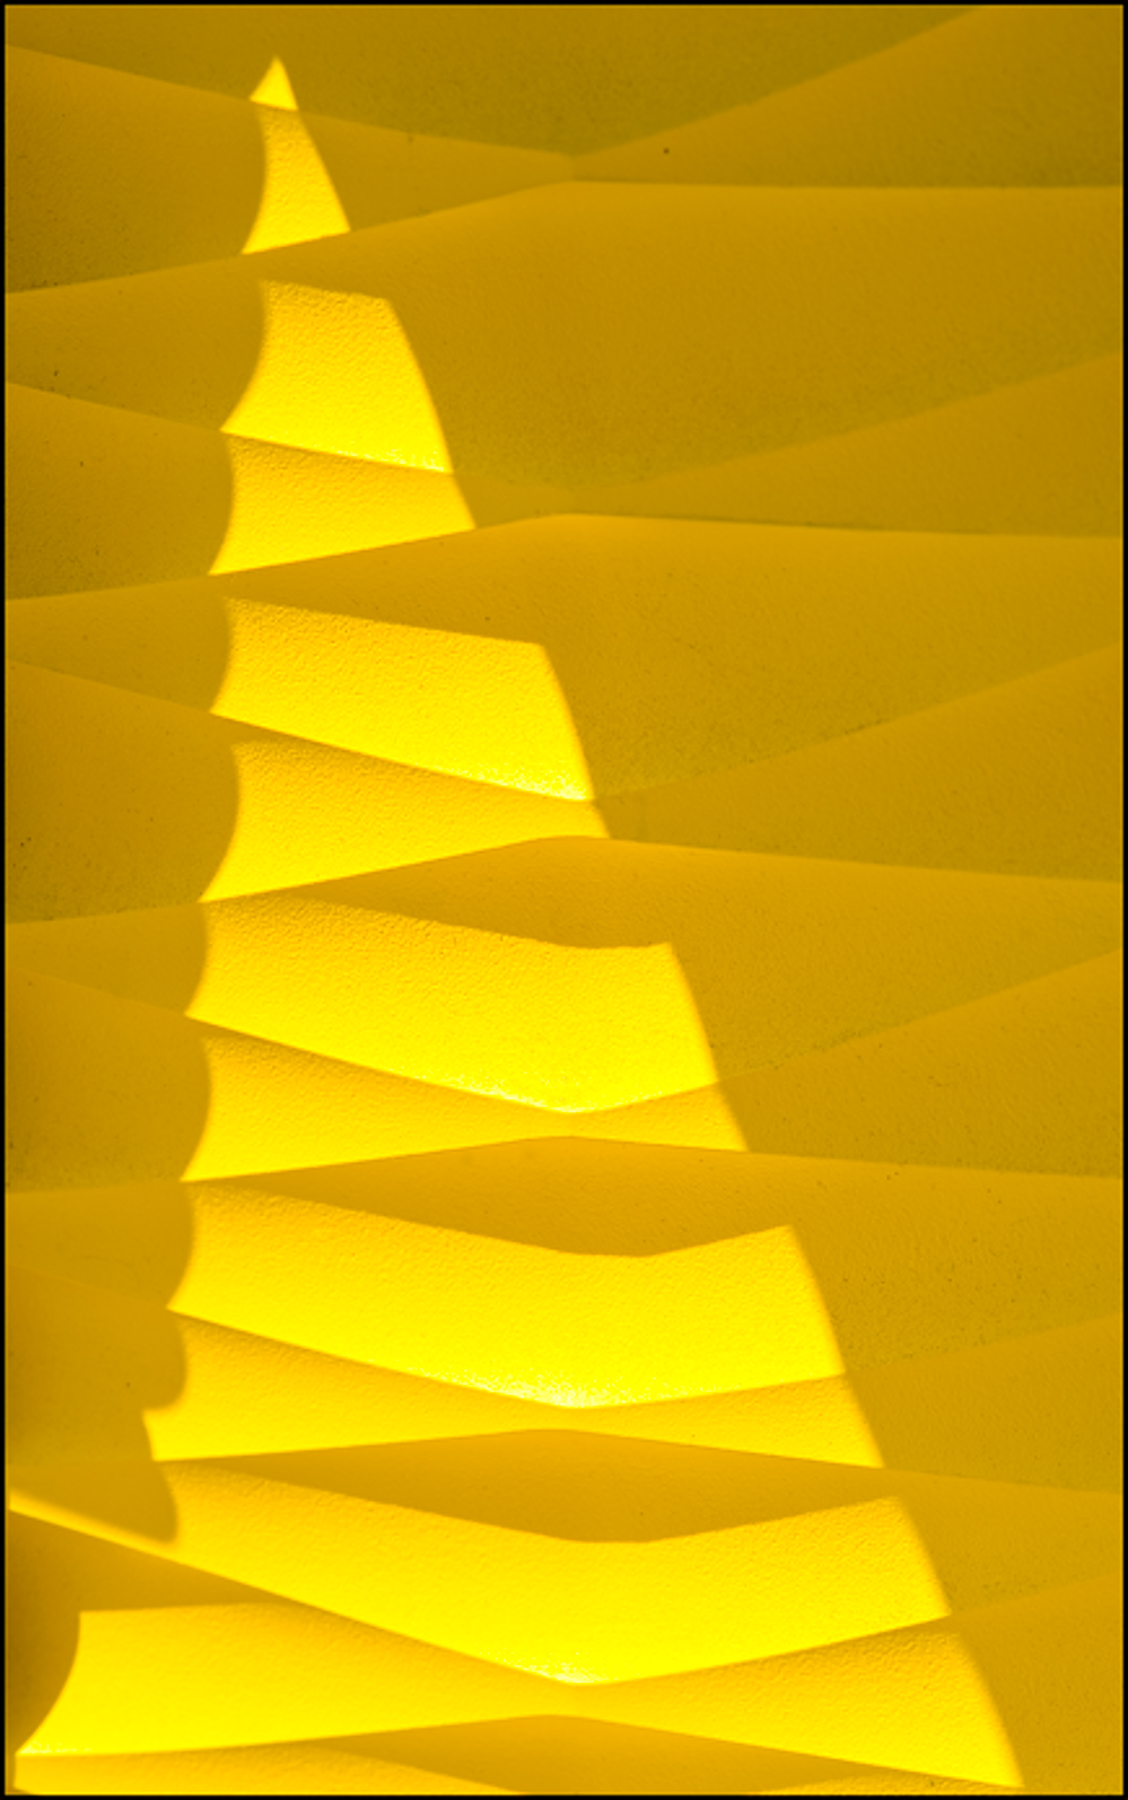 yellowTriangle copy.jpg